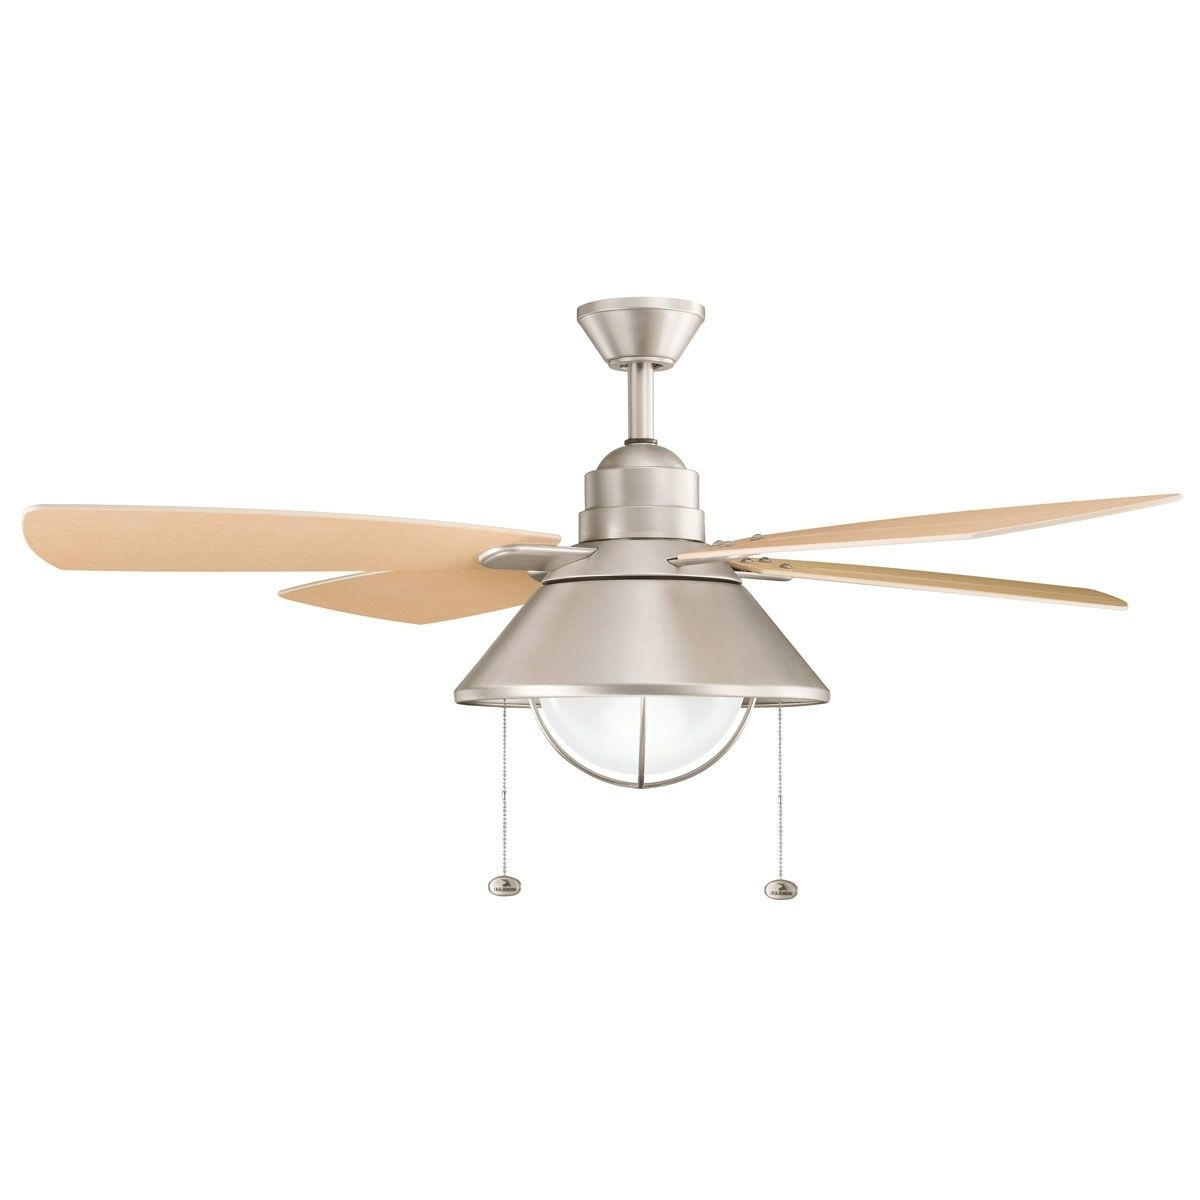 Metal Outdoor Ceiling Fans With Light For 2018 Kichler Fans Seaside Ceiling Fan In Brushed Nickel (View 7 of 20)